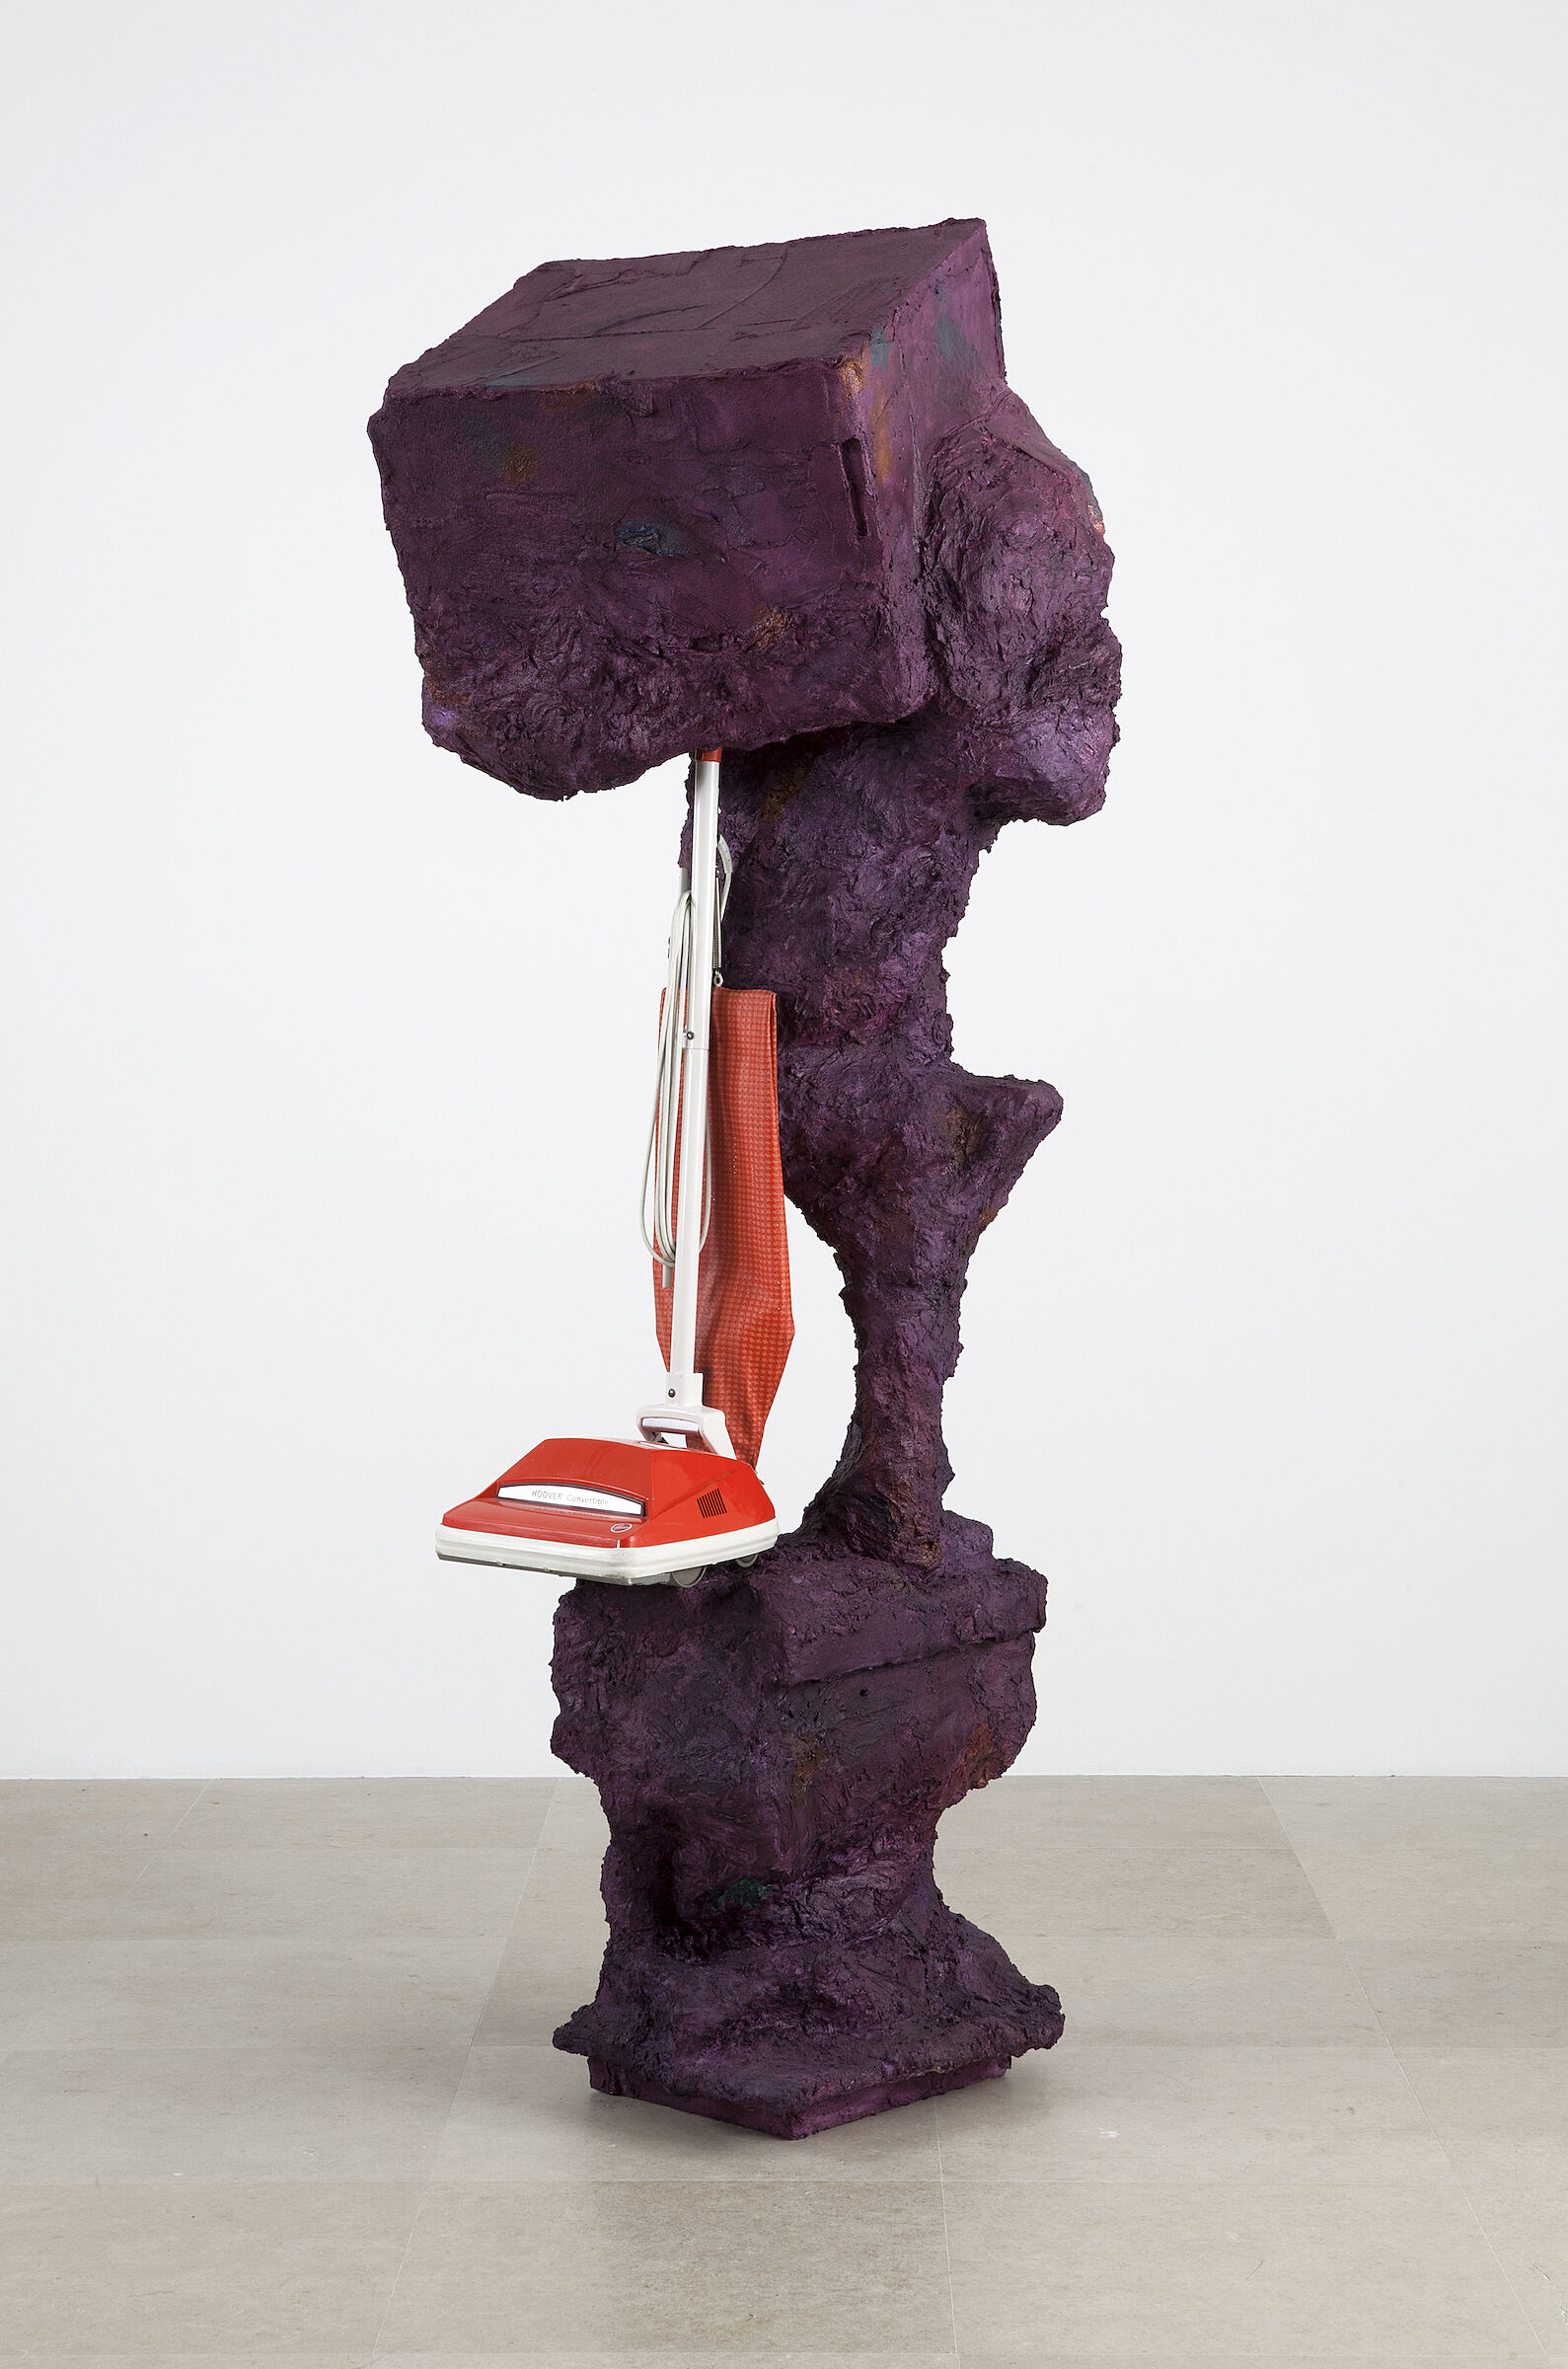 A purple rock-like sculpture holding a red vacuum cleaner.